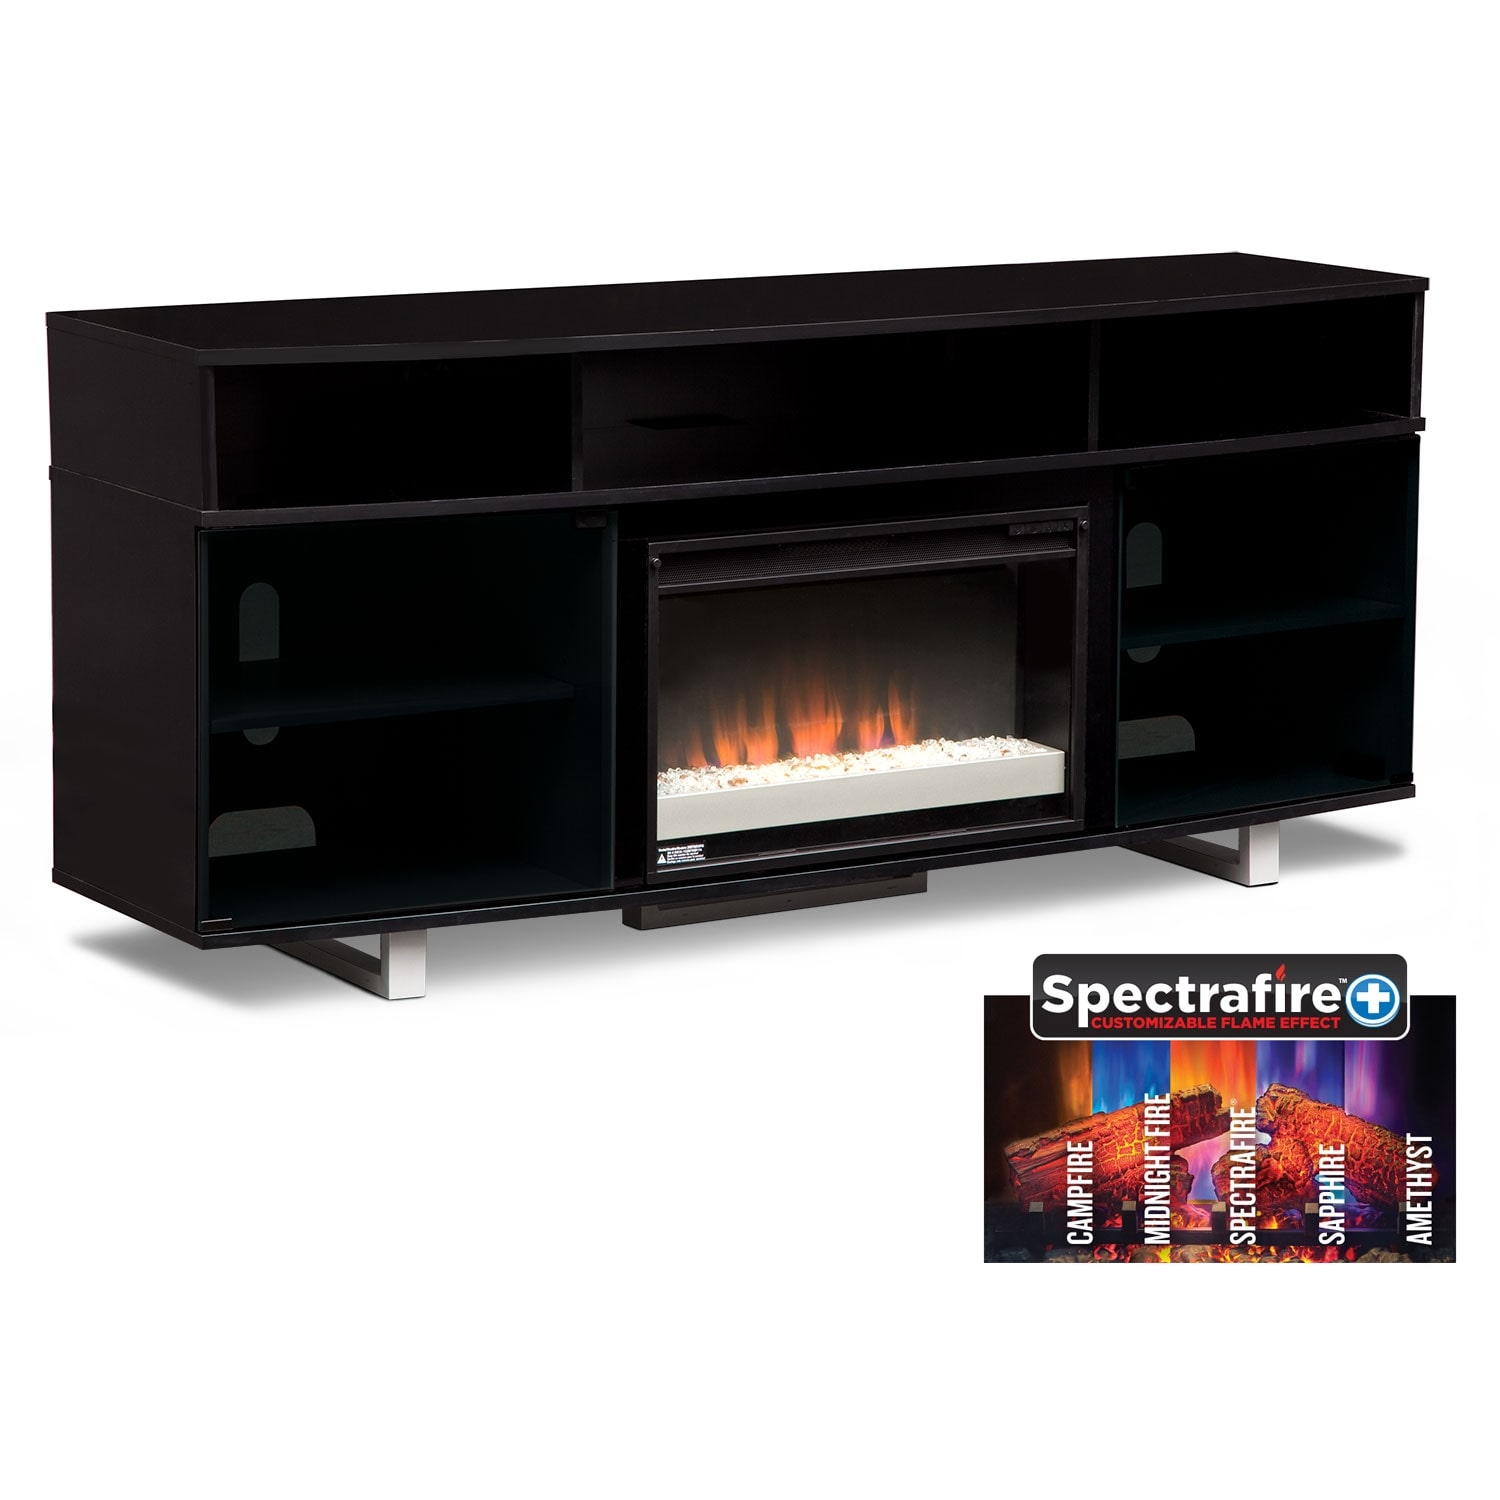 Pacer Black Entertainment Wall Units 72 Contemporary Fireplace Tv Stand American Signature